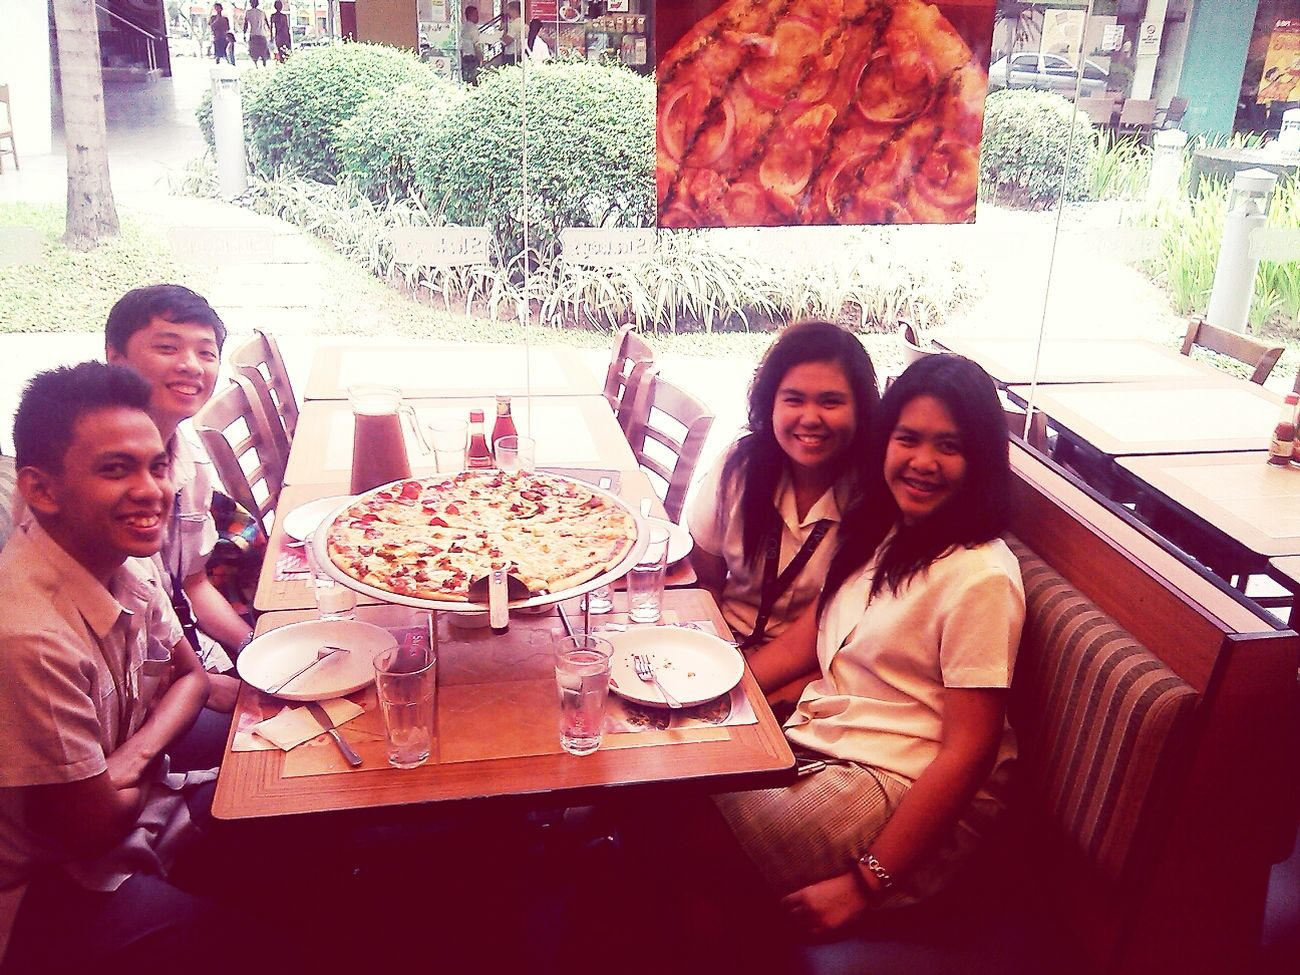 Pizza Time At Shakey's♥ Pizza Hanging Out